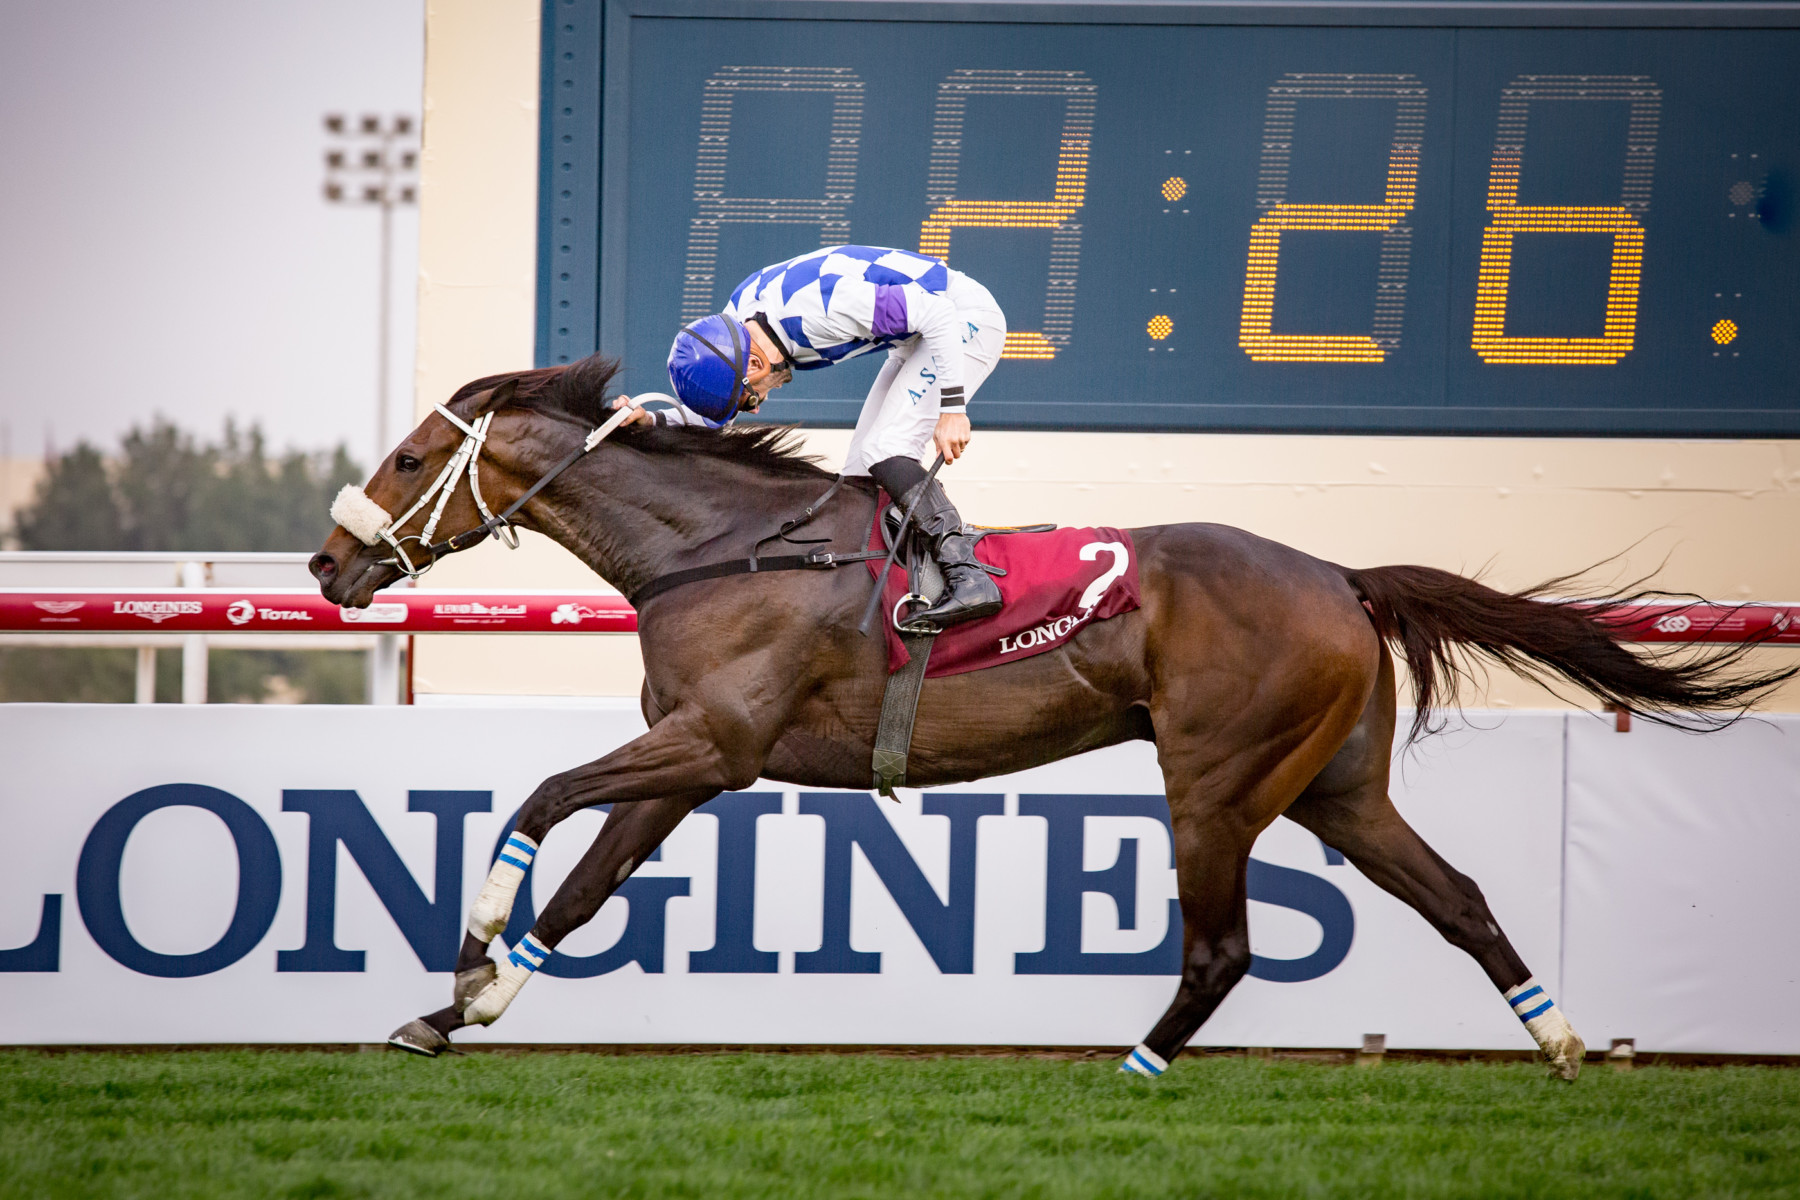 H.H. THE EMIR'S TROPHY (PRESENTED BY LONGINES) (Gr1 local) - Chopin, en route vers Dubaï